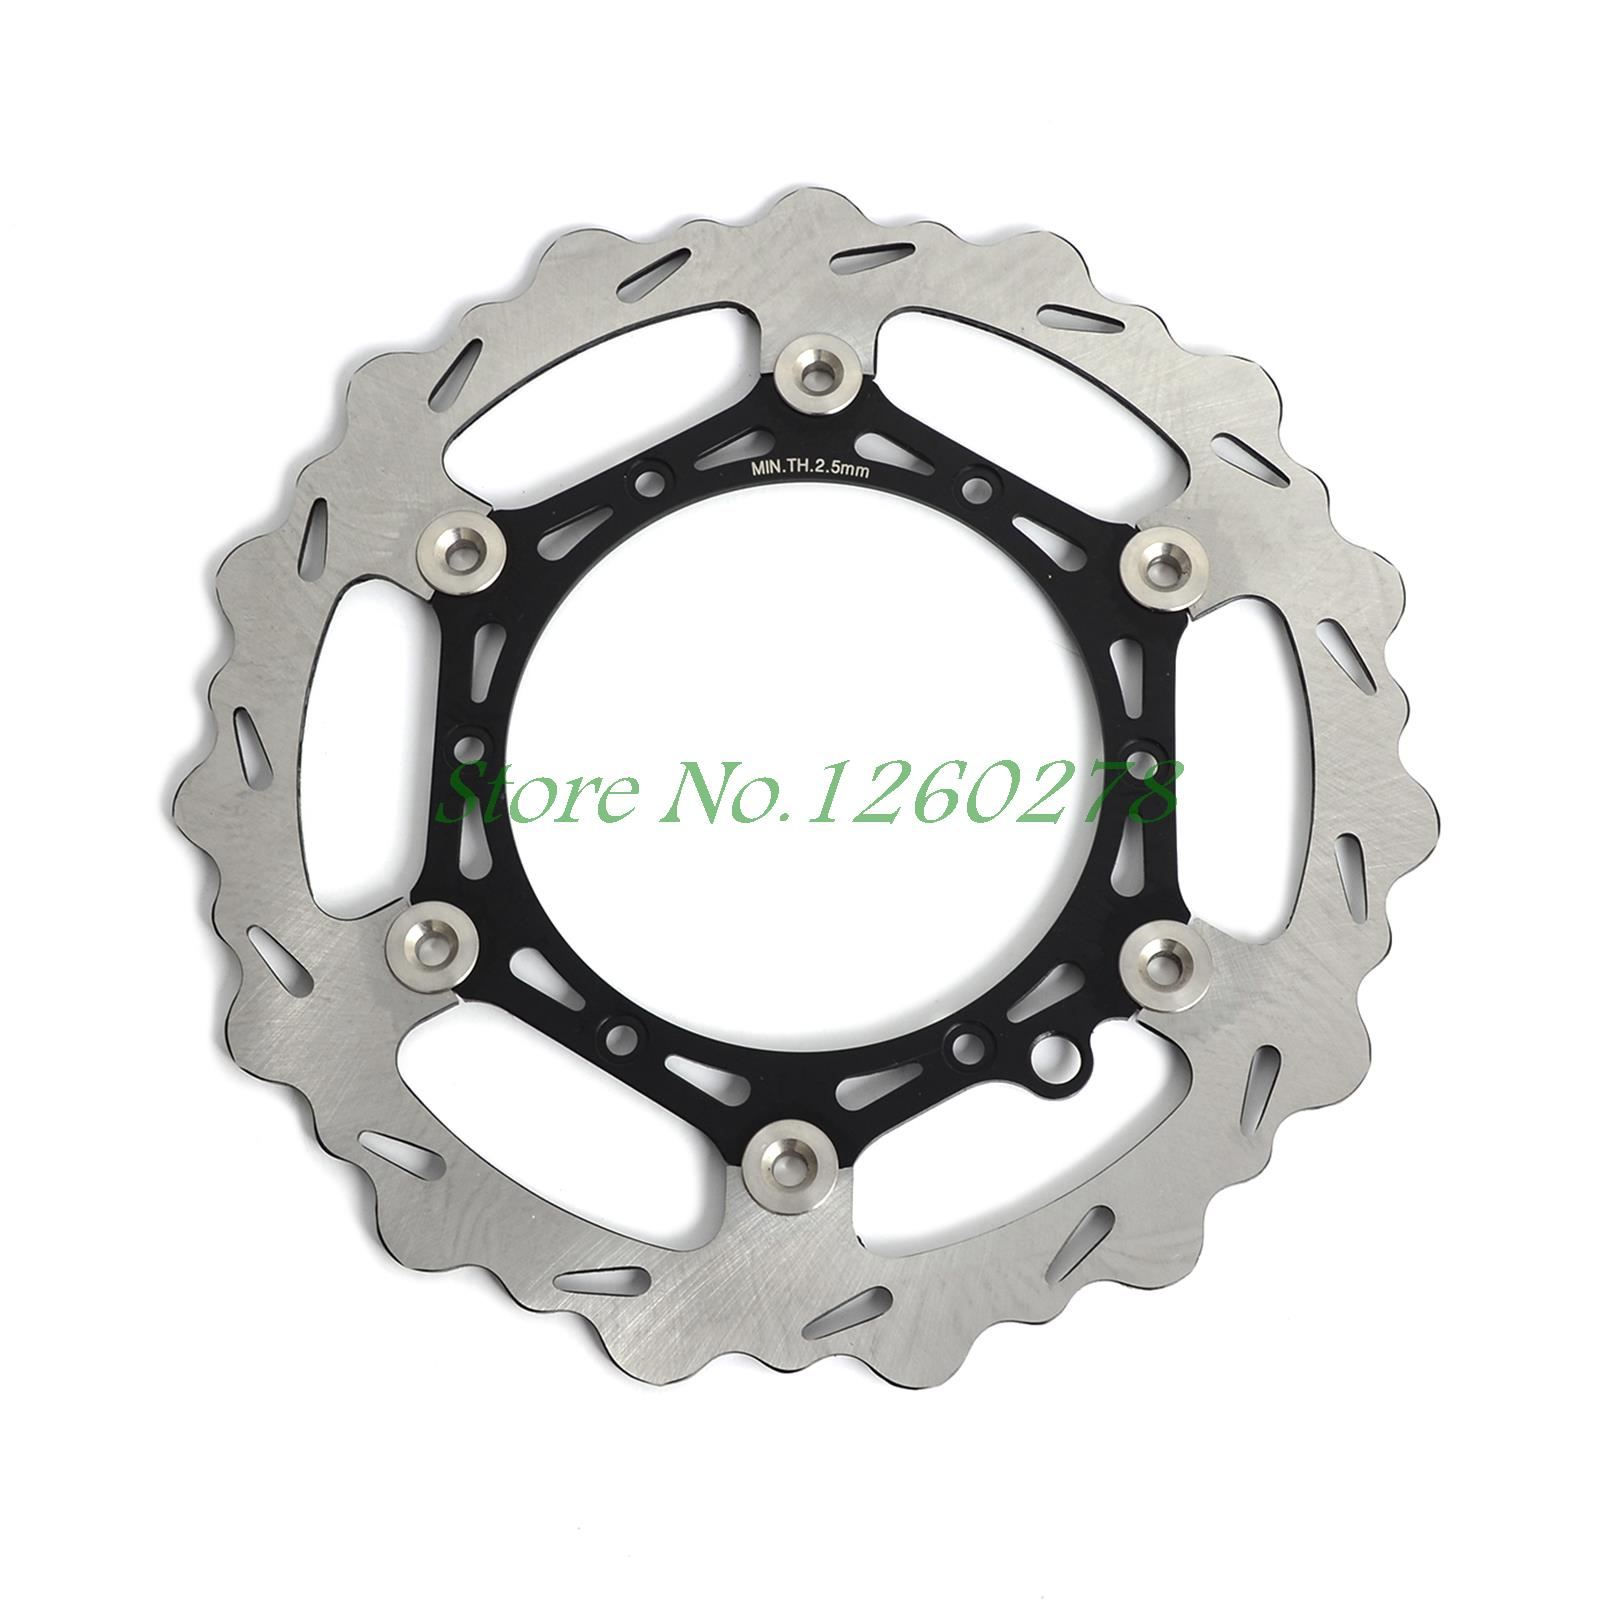 270mm Oversize MX Brake Disc Rotor For Husqvarna TE/TC 125-300, FE/FC 250-501 2014-2015 high quality 270mm oversize front mx brake disc rotor for yamaha yz125 yz250 yz250f yz450f motorbike front mx brake disc